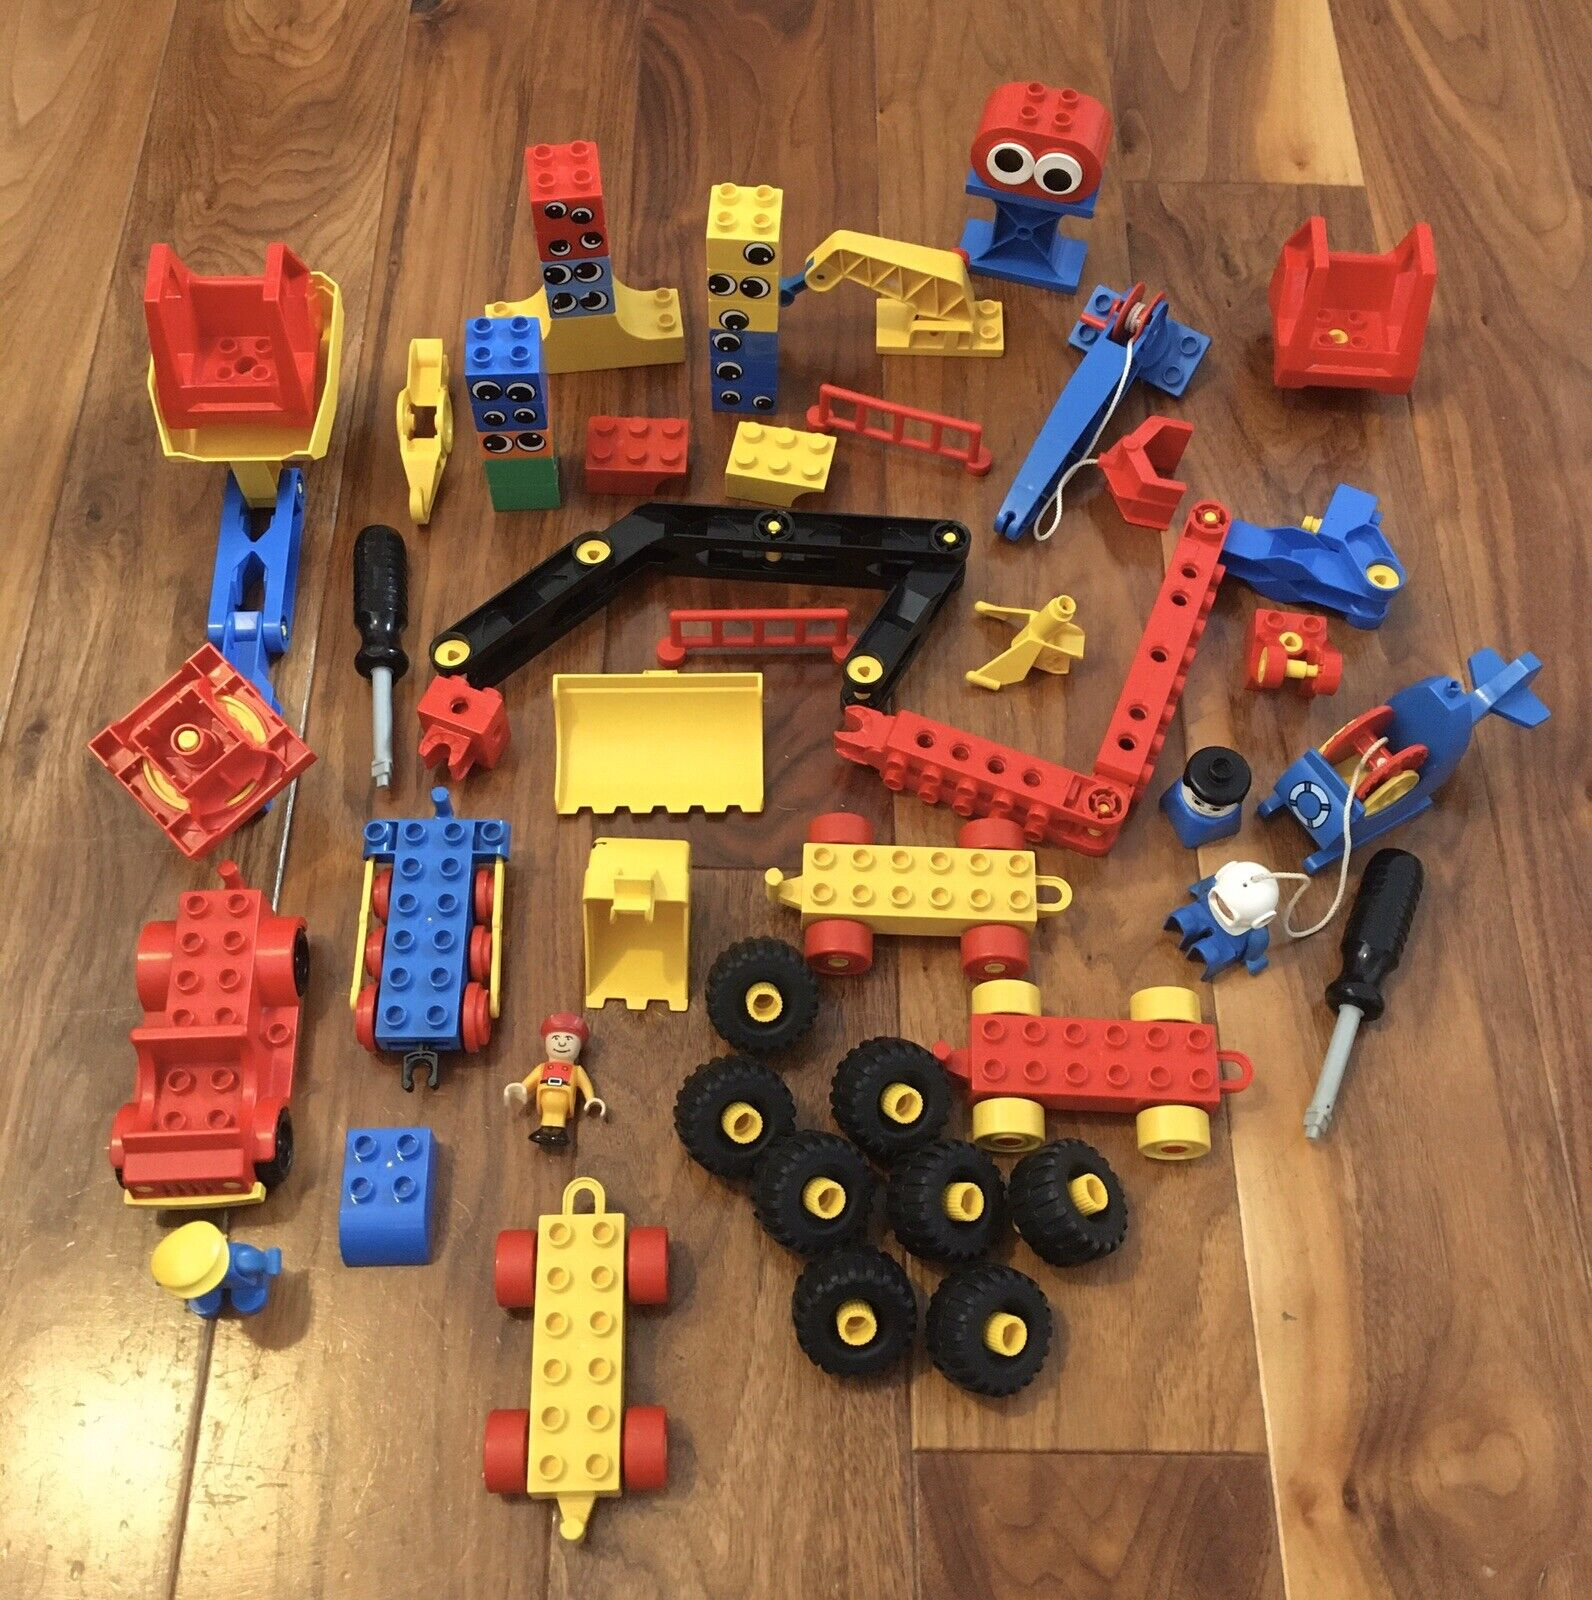 HUGE BUNDLE LEGO DUPLO TOOLO BRICKS SCREWDRIVERS CRANES HELICOPTER TRUCKS WHEELS